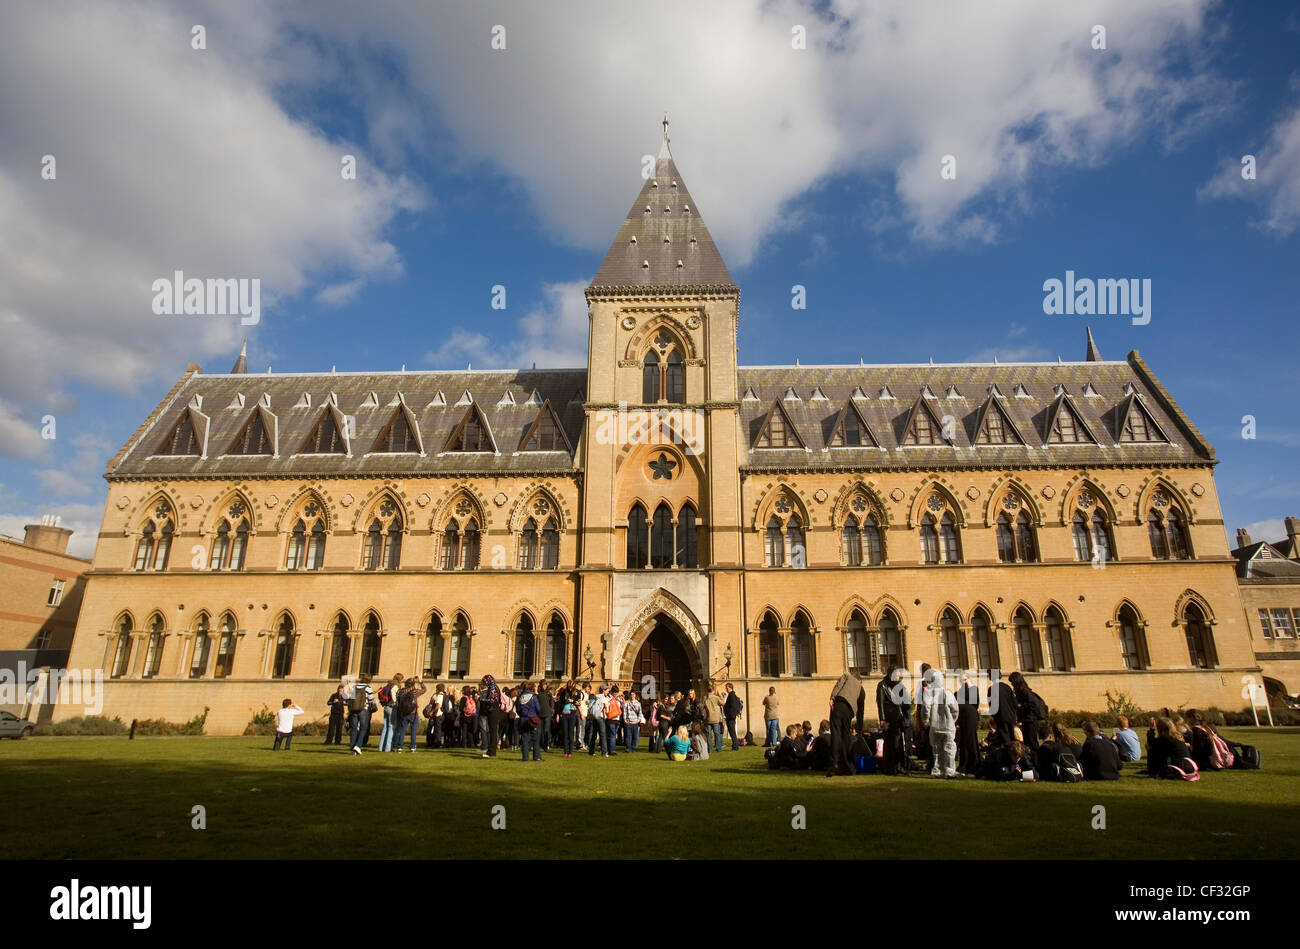 School groups and tourists outside the Pitt Rivers Museum in Oxford. The museum was founded in 1844 when Lt.-General - Stock Image